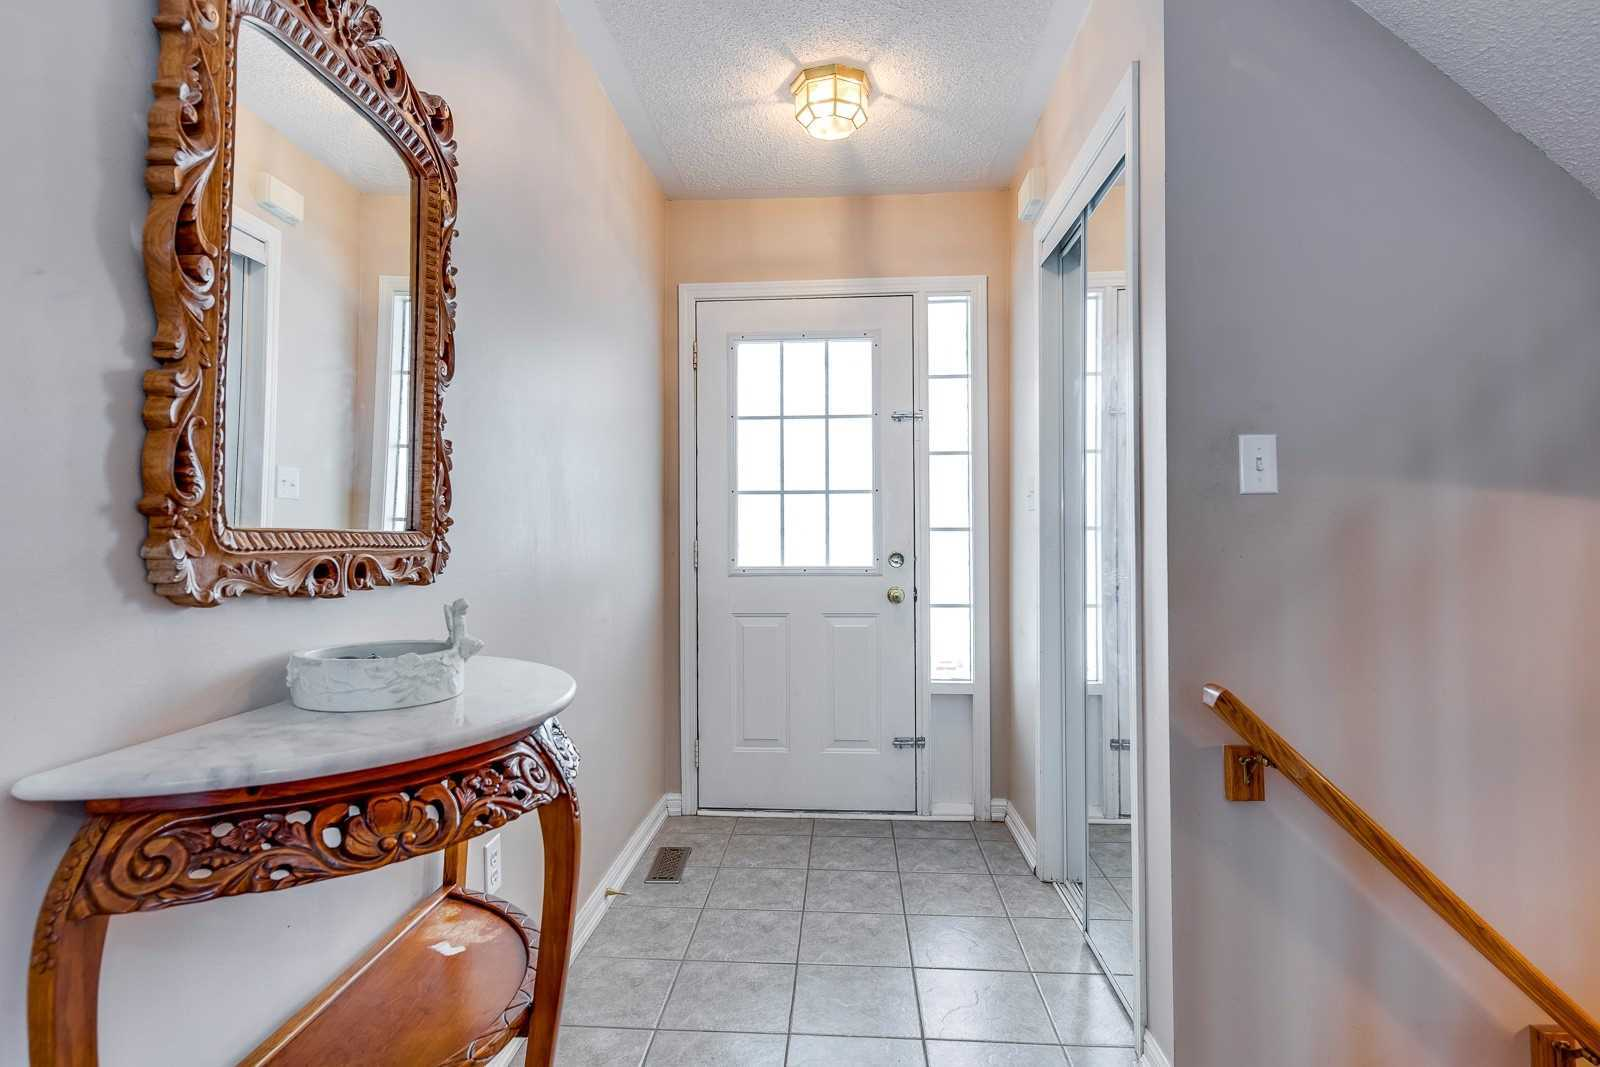 Image 14 of 20 showing inside of 3 Bedroom Att/Row/Twnhouse 2-Storey house for sale at 682 Edwards Ave, Milton L9T6B3